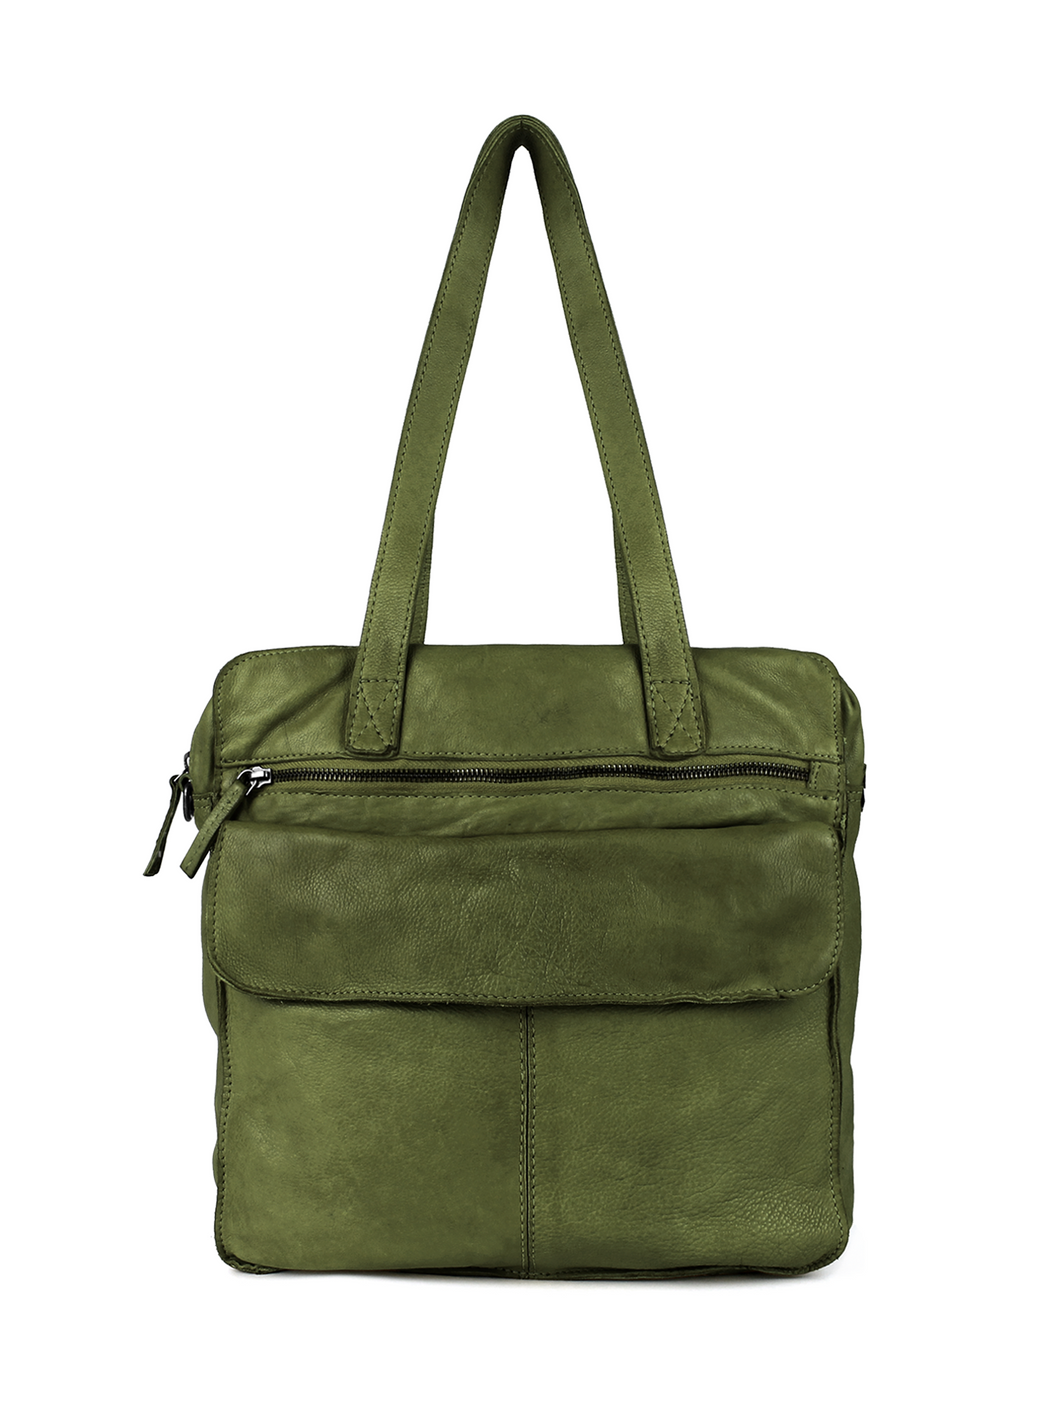 DSTRCT HARRINGTON ROAD SHOPPER LARGE FRONT POCKET GREEN 354430.80